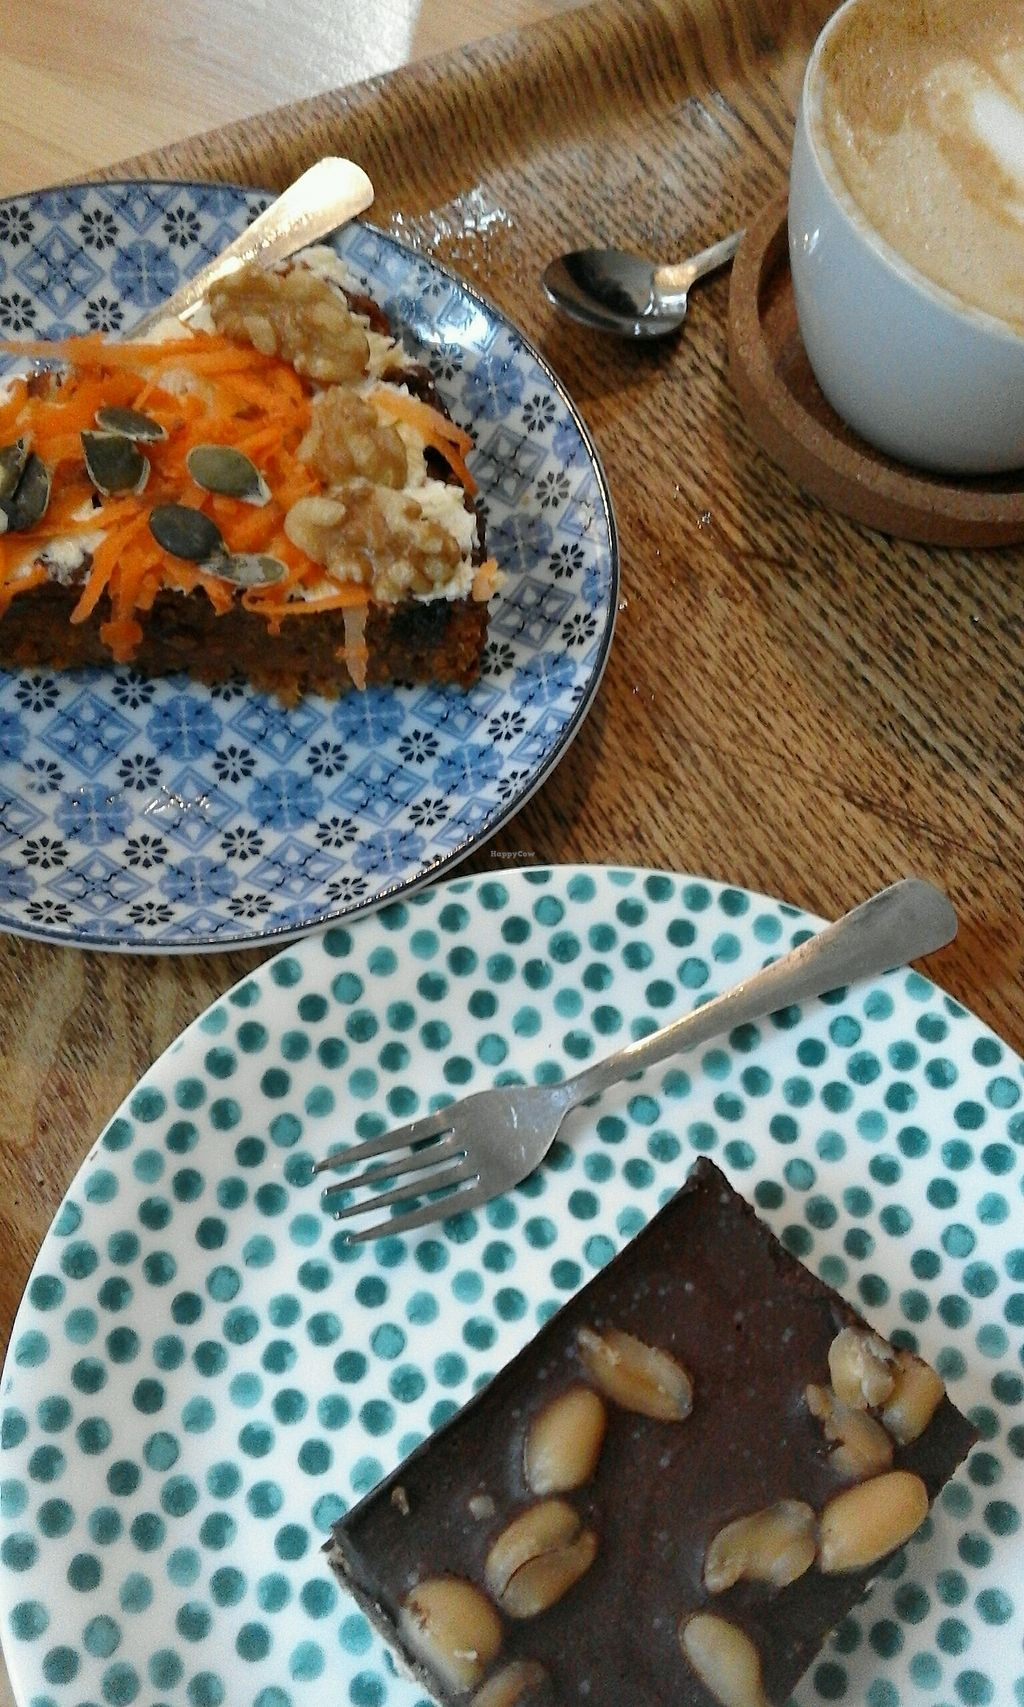 """Photo of Koffiebar Sowieso  by <a href=""""/members/profile/v_mdj"""">v_mdj</a> <br/>vegan carrot and a vegan peanut-chocokate cake <br/> December 9, 2017  - <a href='/contact/abuse/image/89076/333870'>Report</a>"""